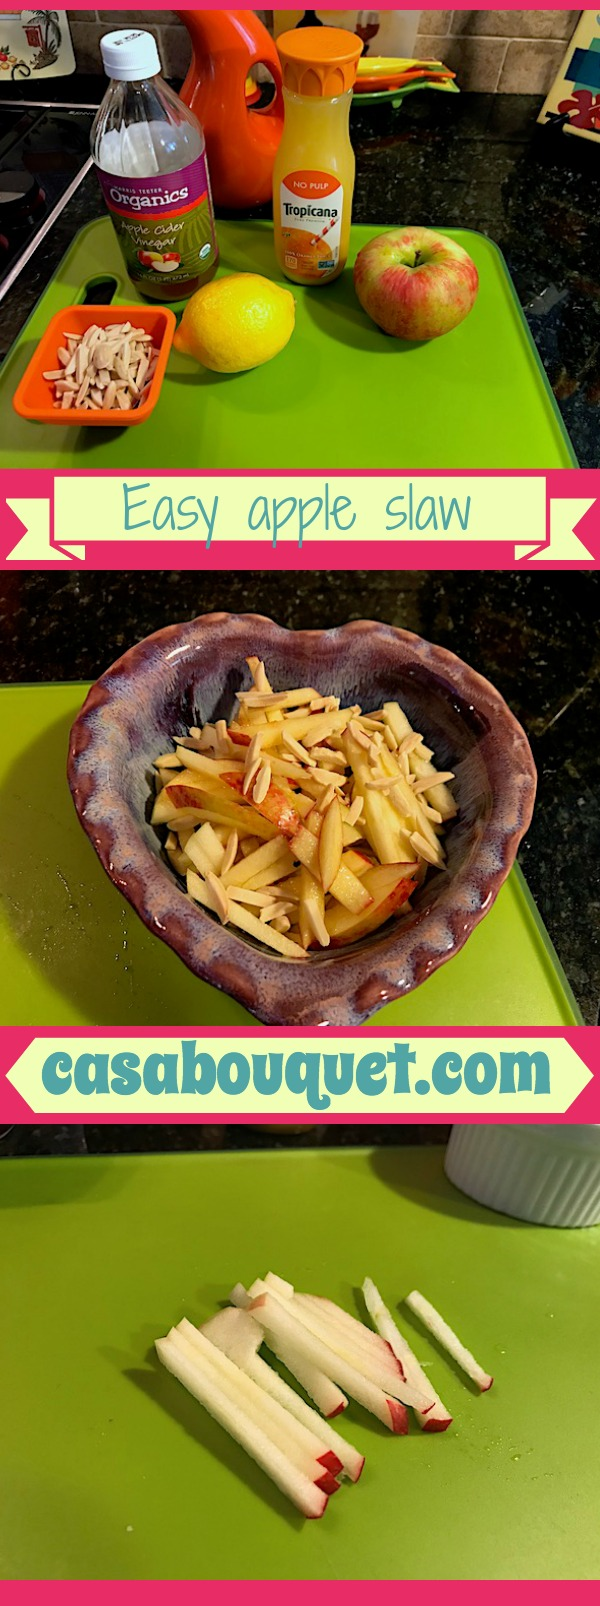 Easy apple slaw uses lemon and orange juice for tart flavor. Fall favorite with firm apples. Dairy free, gluten free, egg free, and soy free. Almonds add crunch.